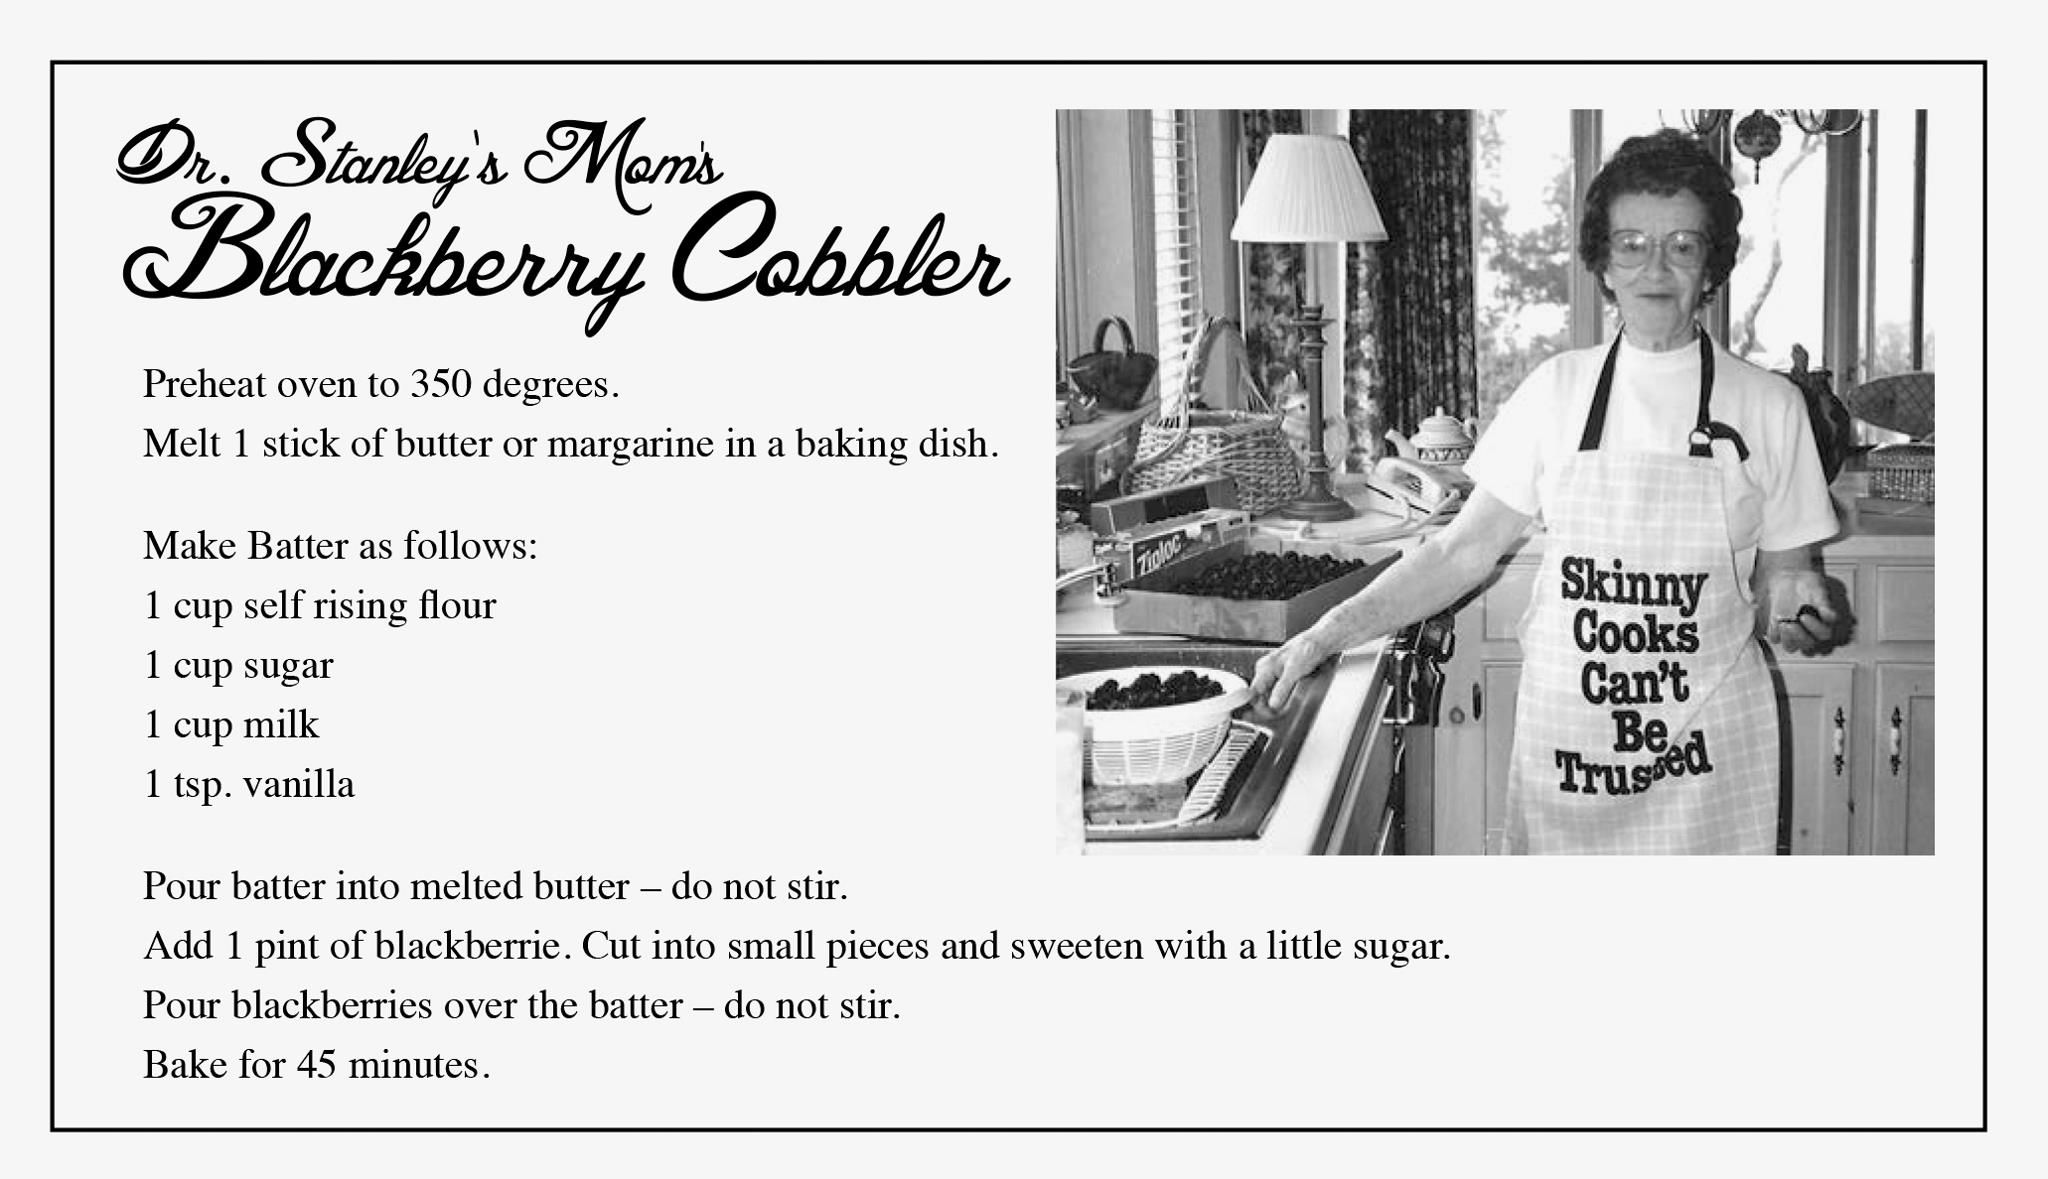 Easy cobbler recipe double for a 9x13 pan substitute any